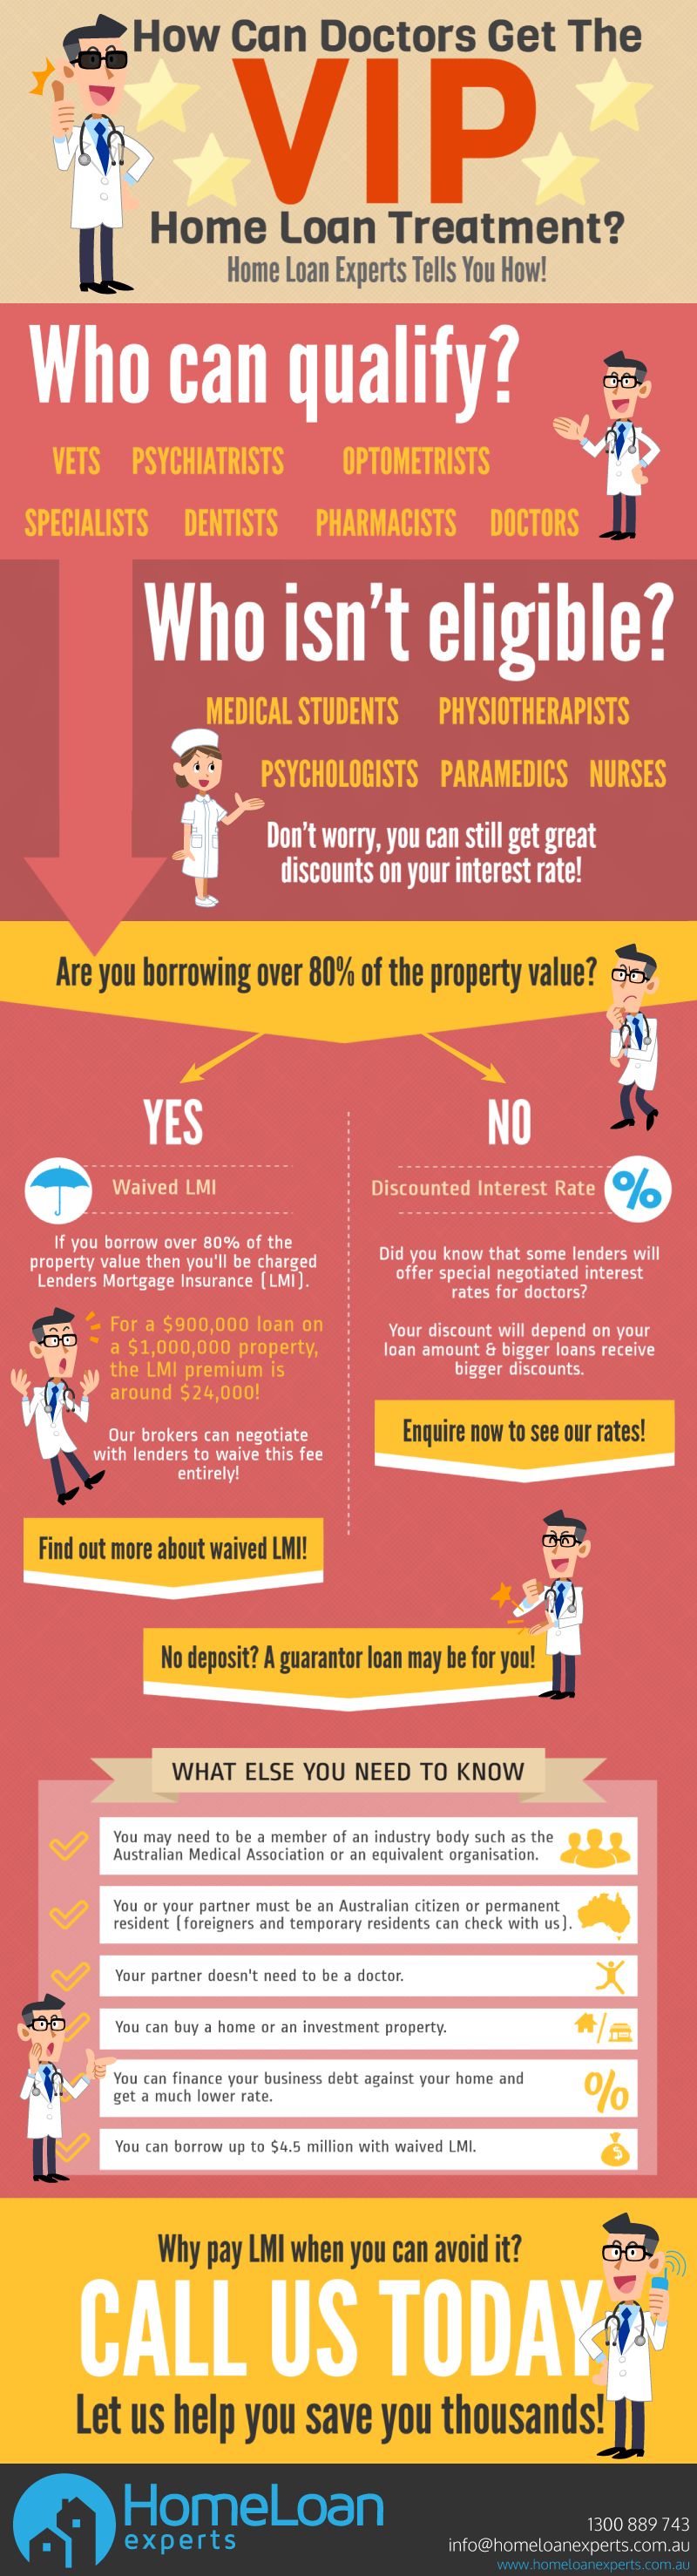 How Can Doctors Get The VIP Home Loan Treatment infographic